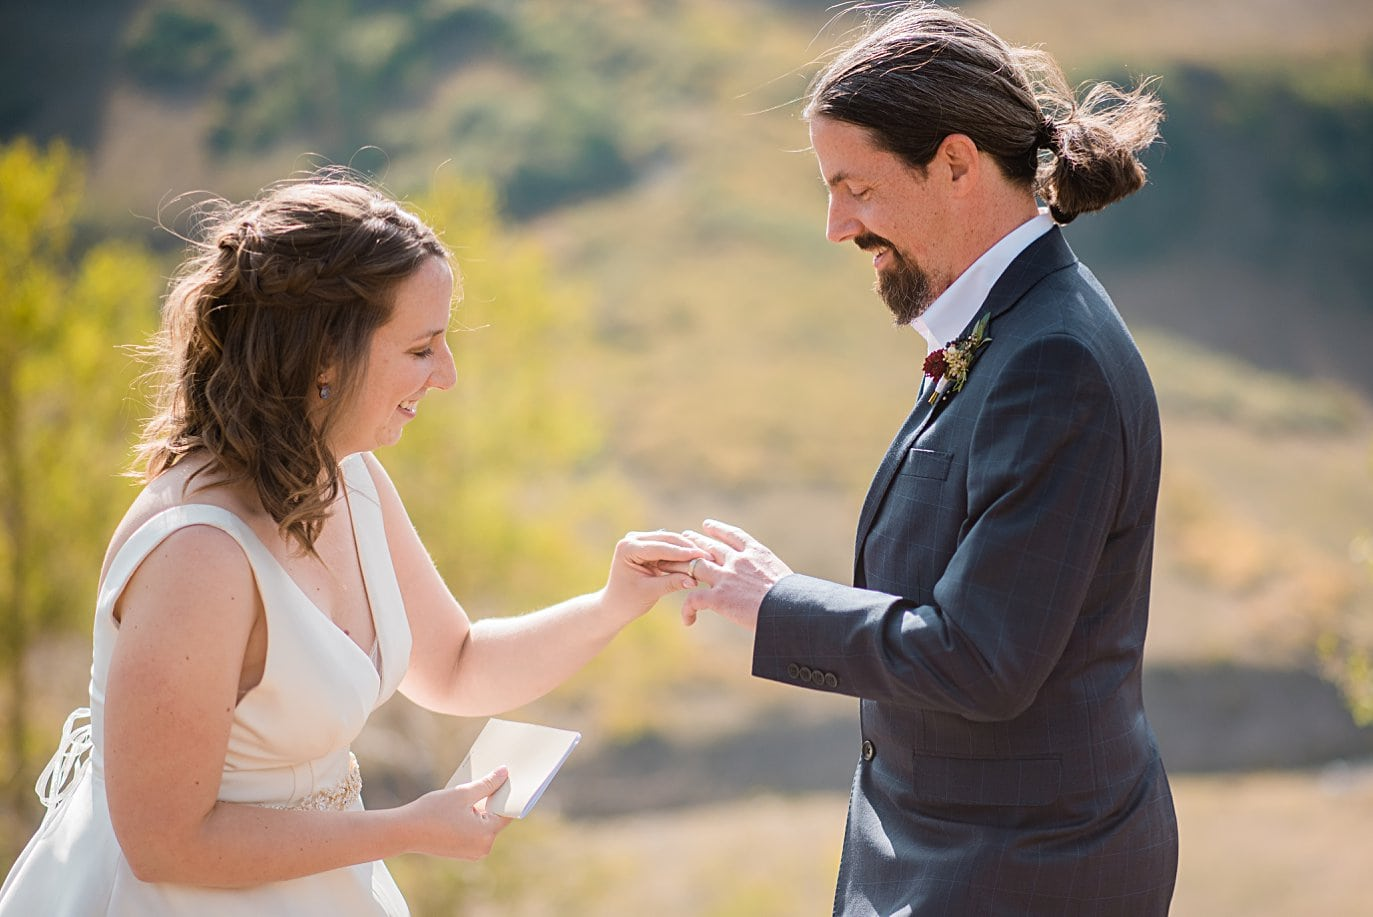 bride puts ring on groom's finger during intimate ceremony in Colorado by Colorado wedding photographer Jennie Crate